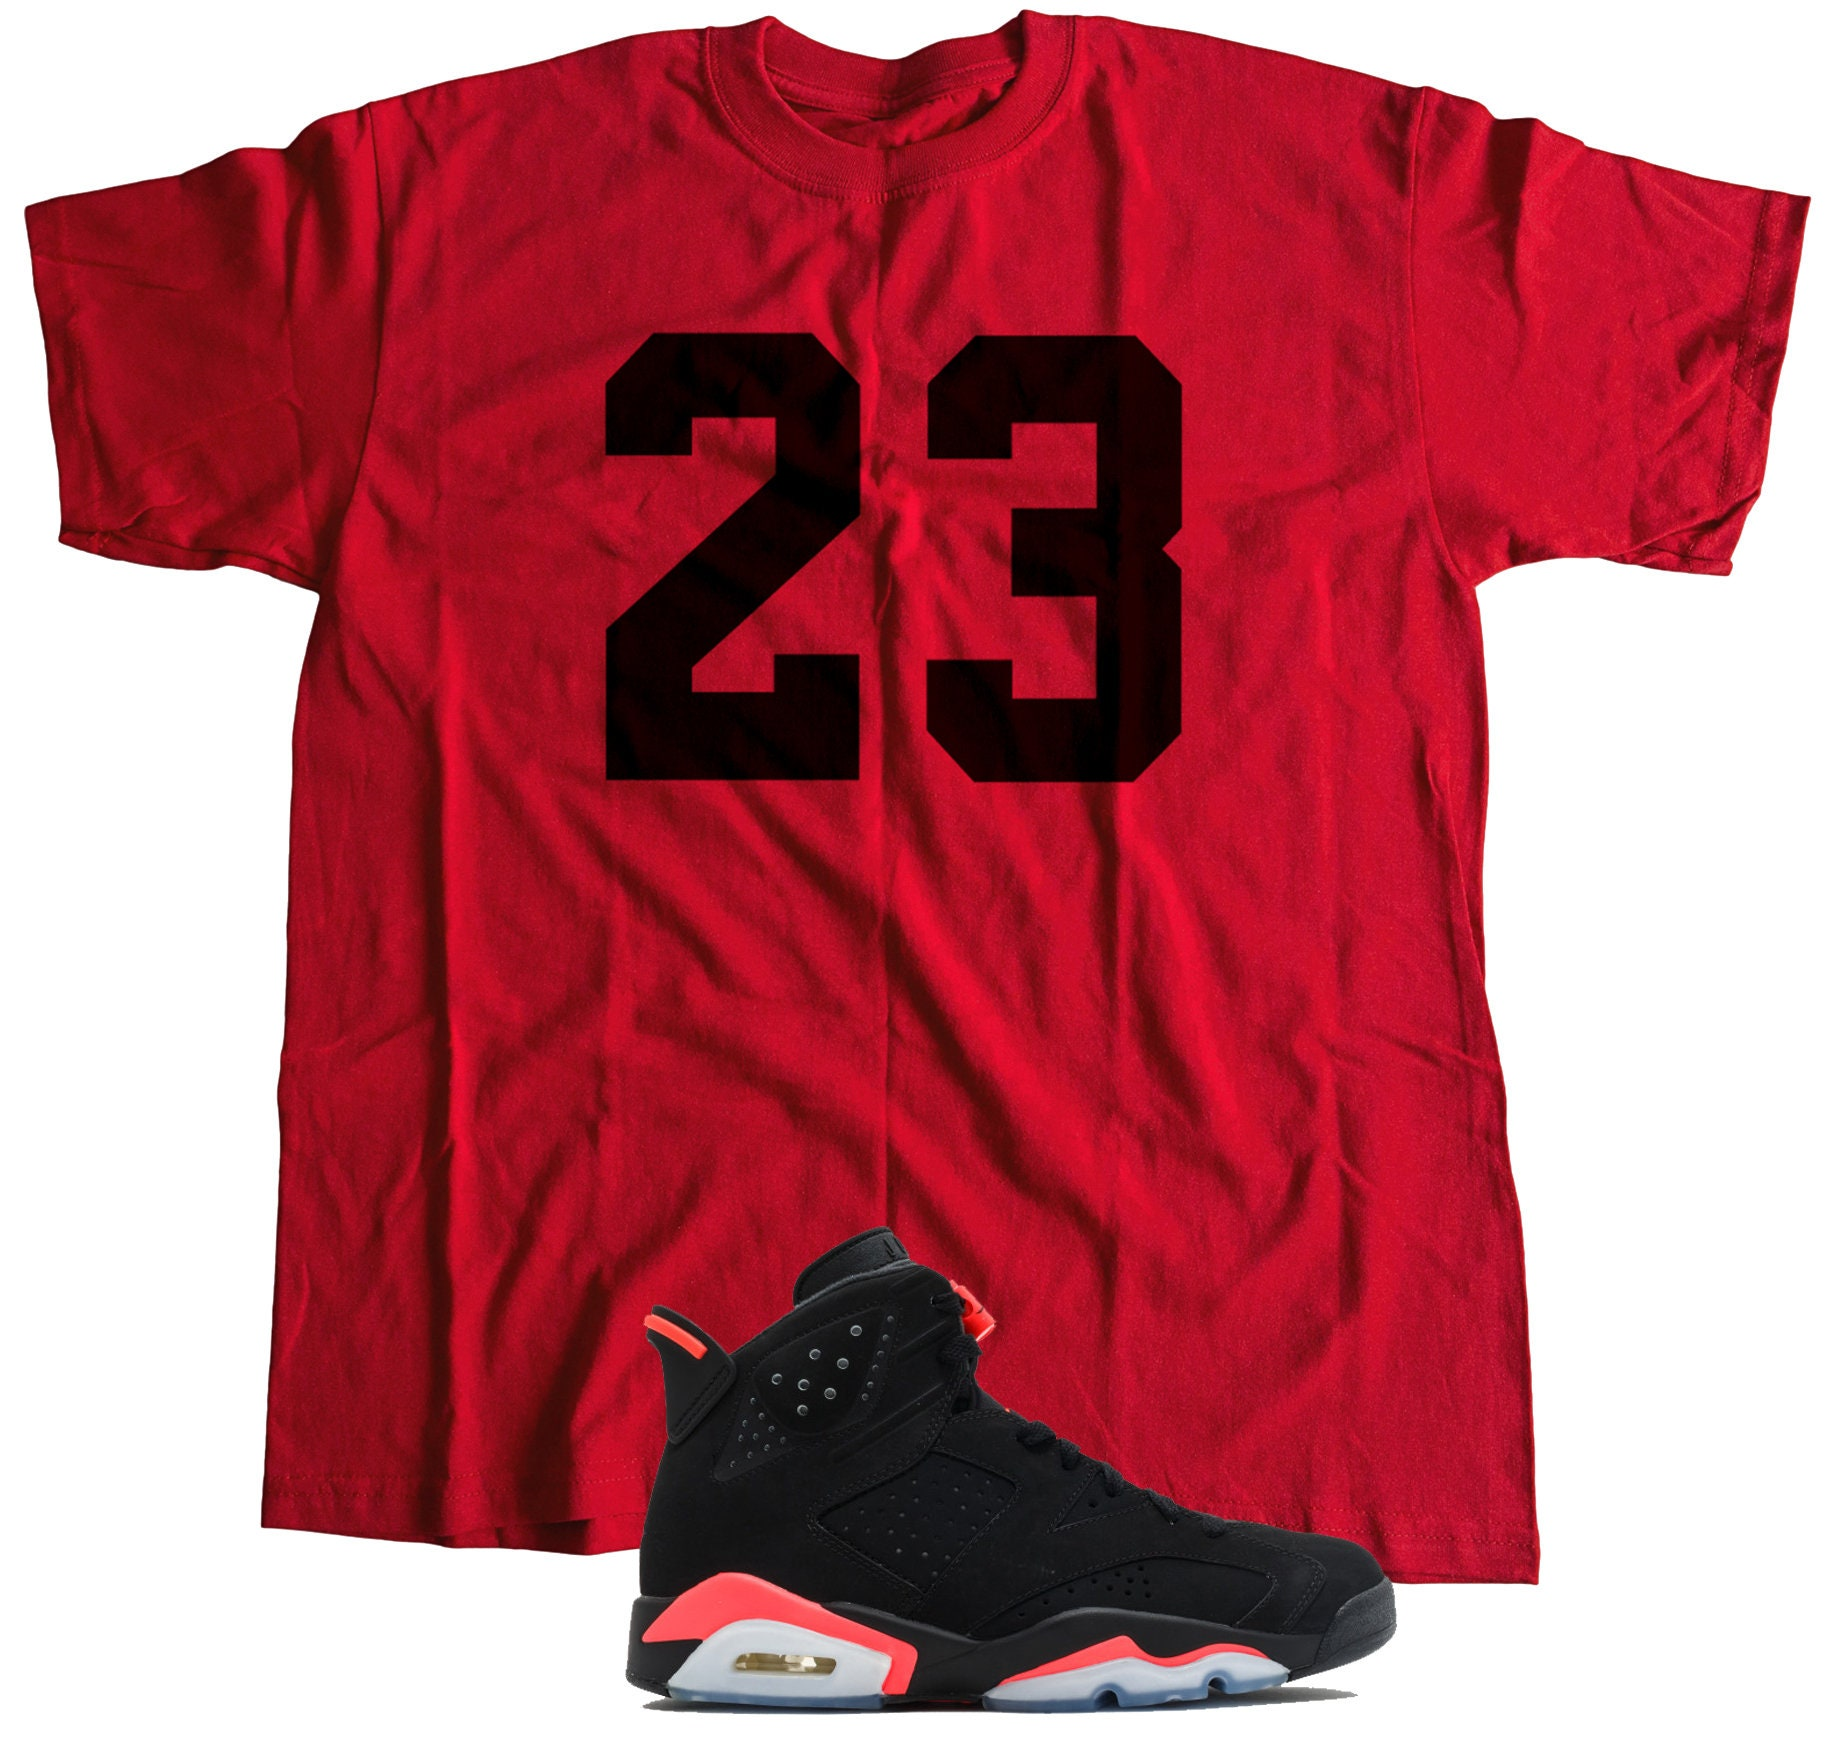 657d411d633 Nike Air Jordan Retro T Shirts – EDGE Engineering and Consulting Limited